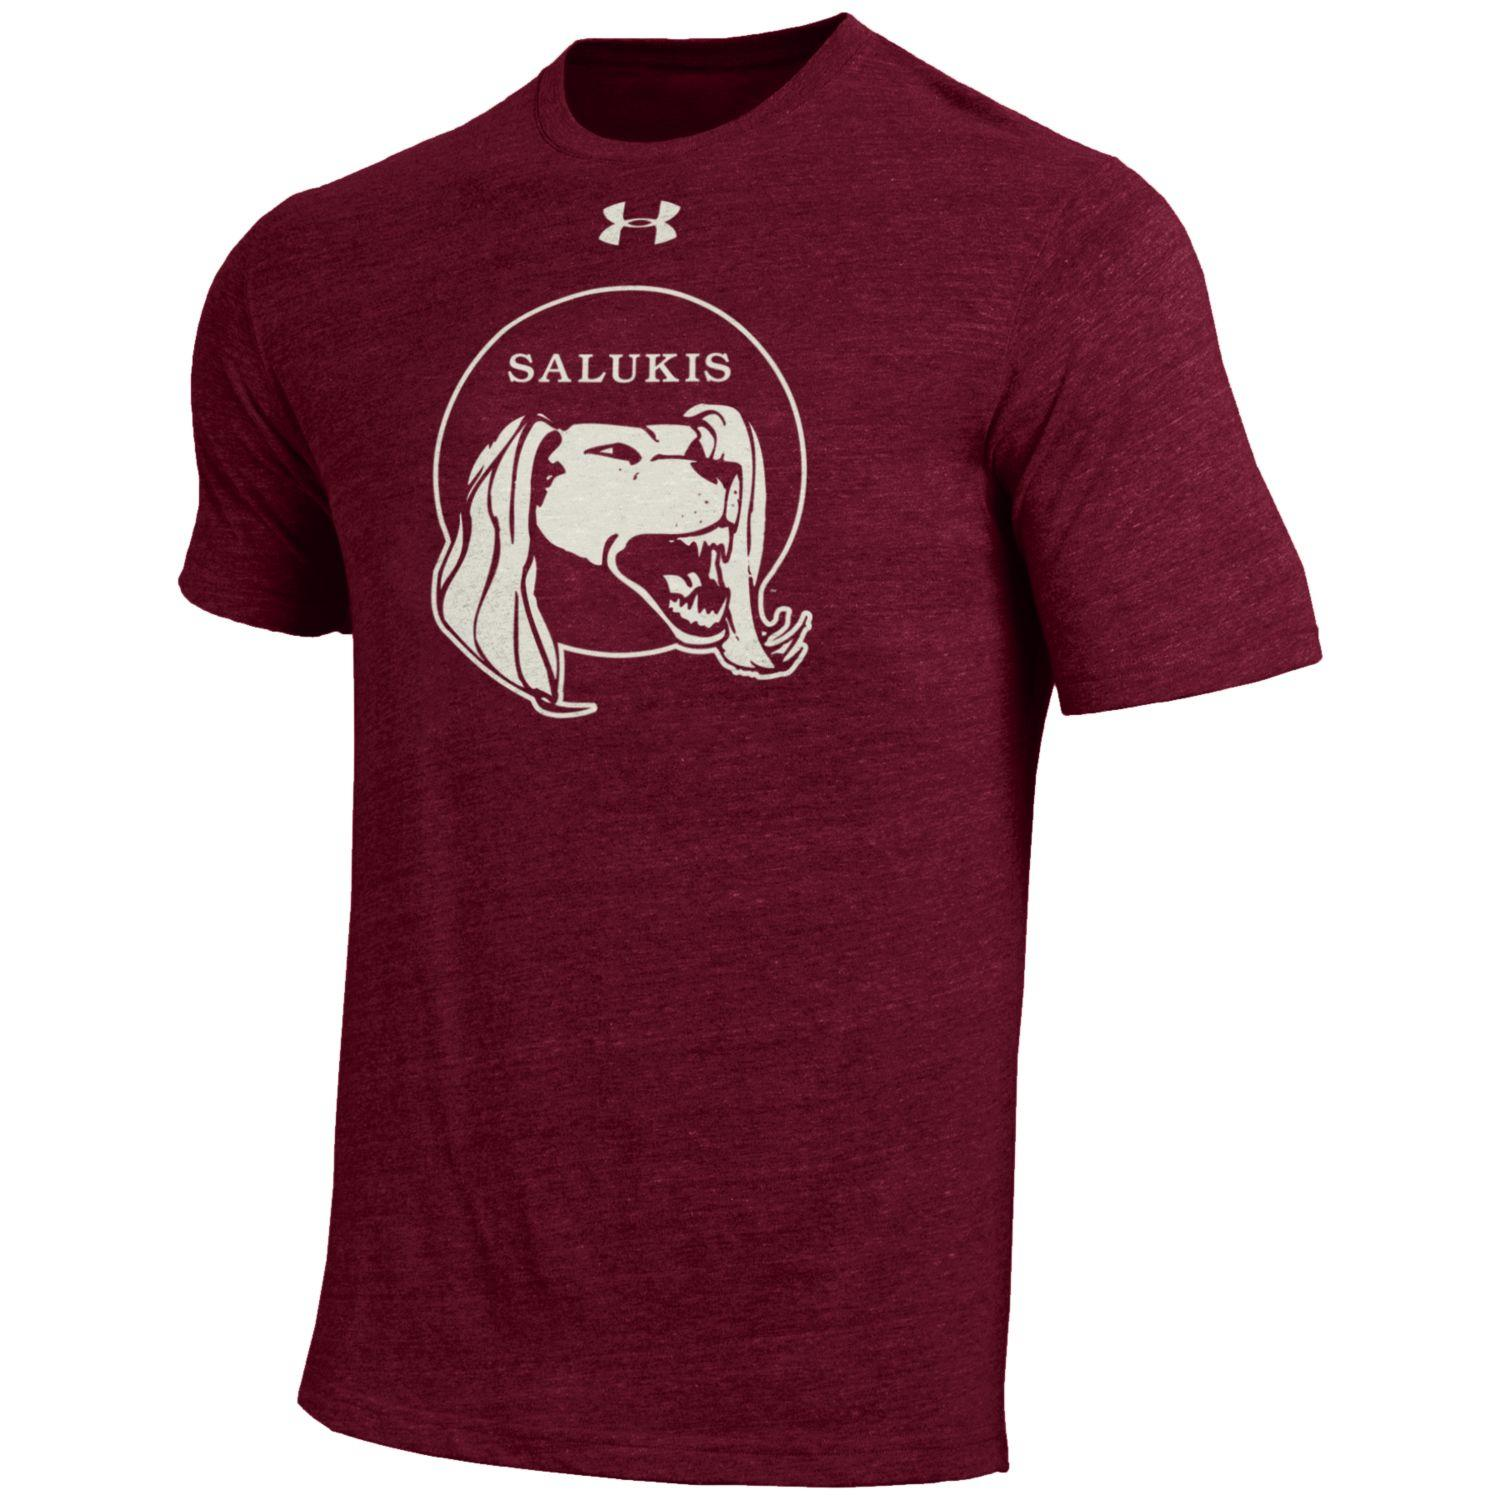 Image for the UNDER ARMOUR® SALUKIS LEGACY LOGO TRI-BLEND T-SHIRT product